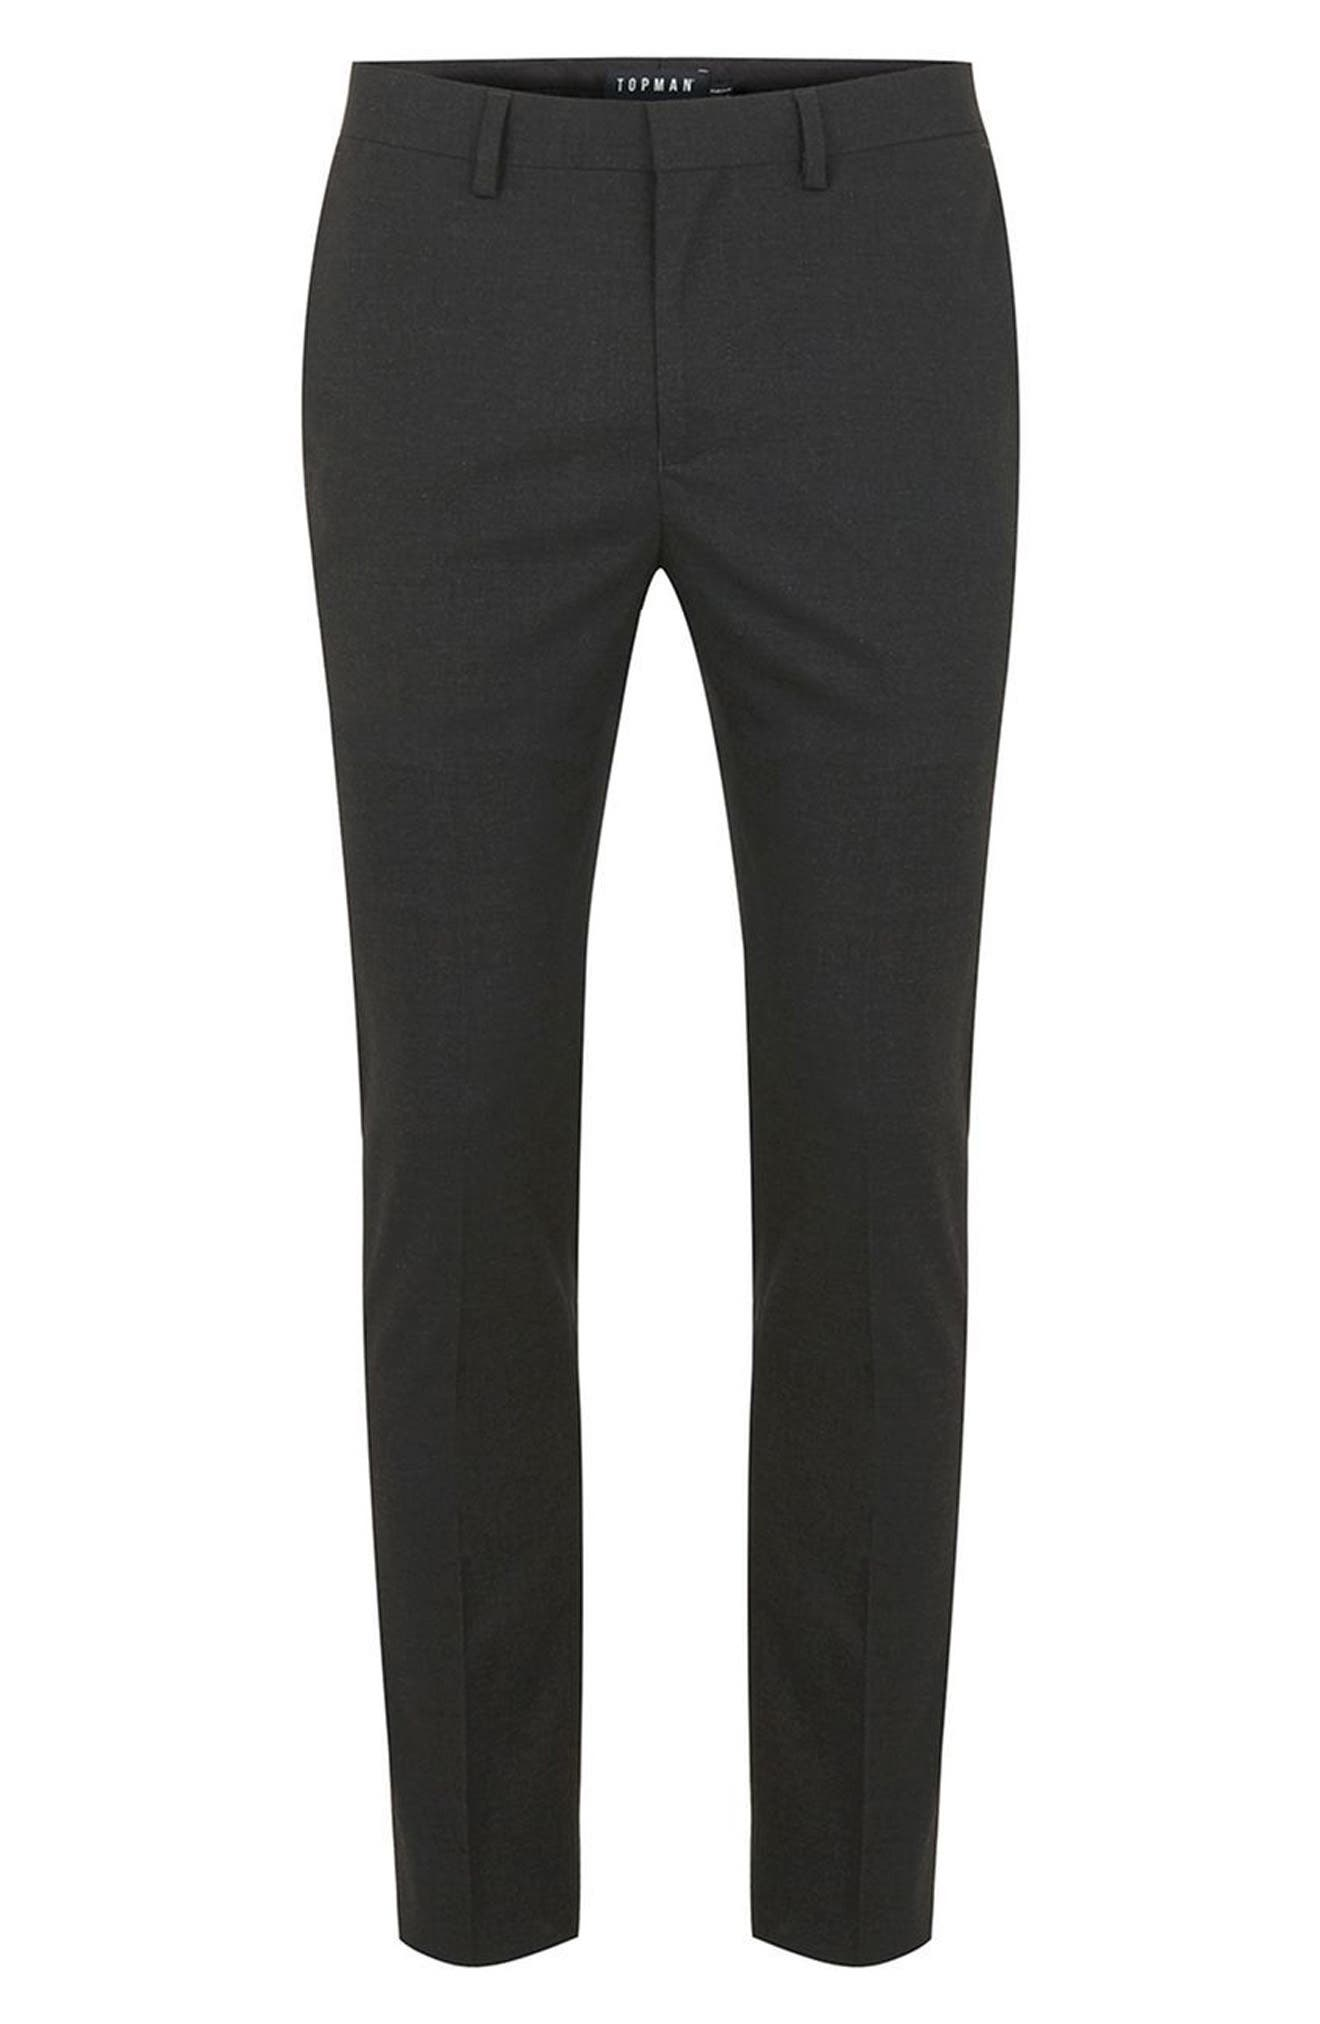 Ultra Skinny Fit Trousers,                             Alternate thumbnail 4, color,                             021